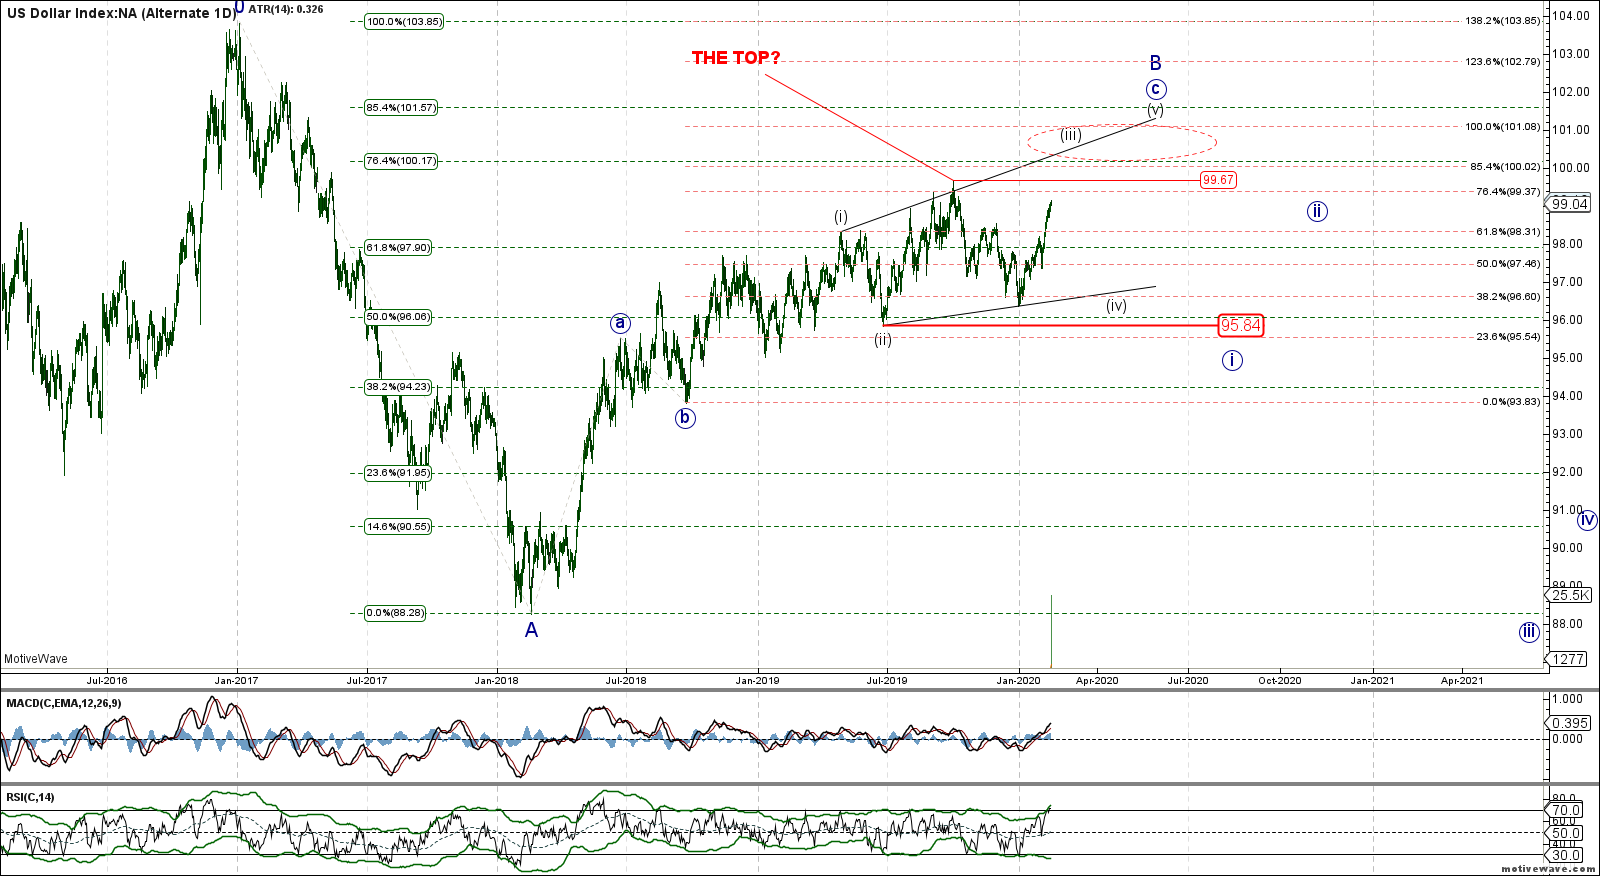 BaseCase - .DXY - Alternate 1D - Feb-14 0920 AM (1 day)